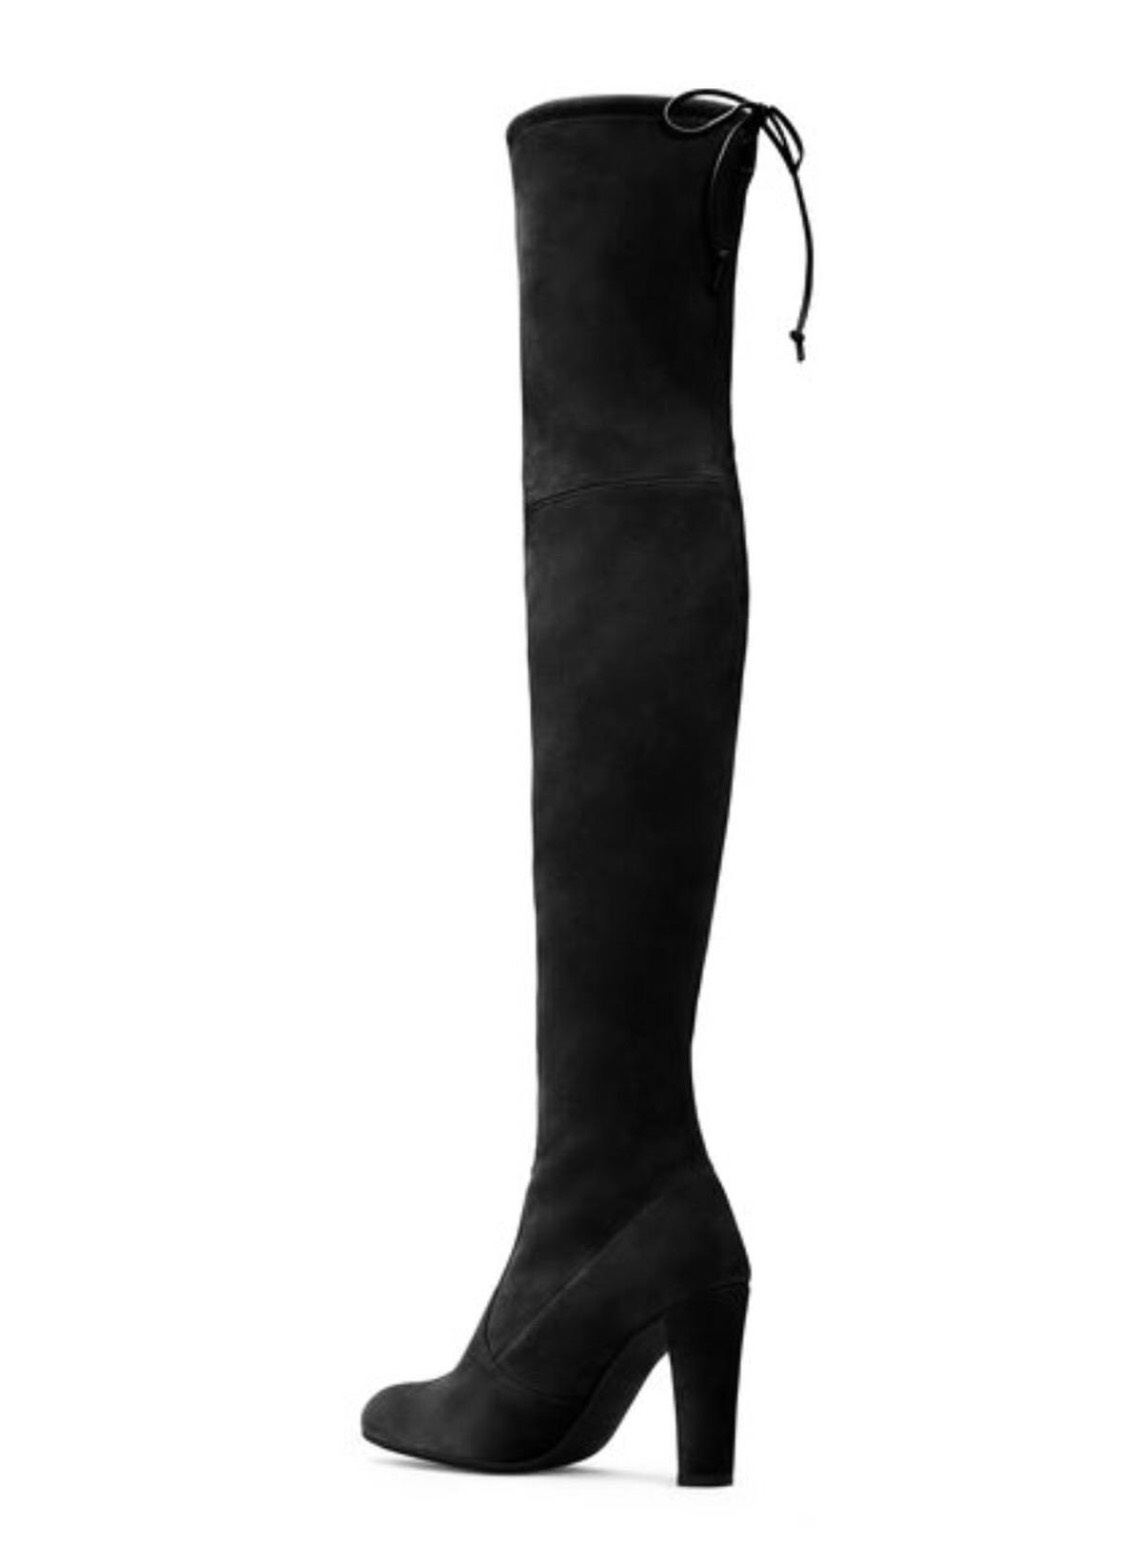 4d2e2598715 Thalia Suede Over The Knee Boots - FINAL SALE — Soho Style Boutique